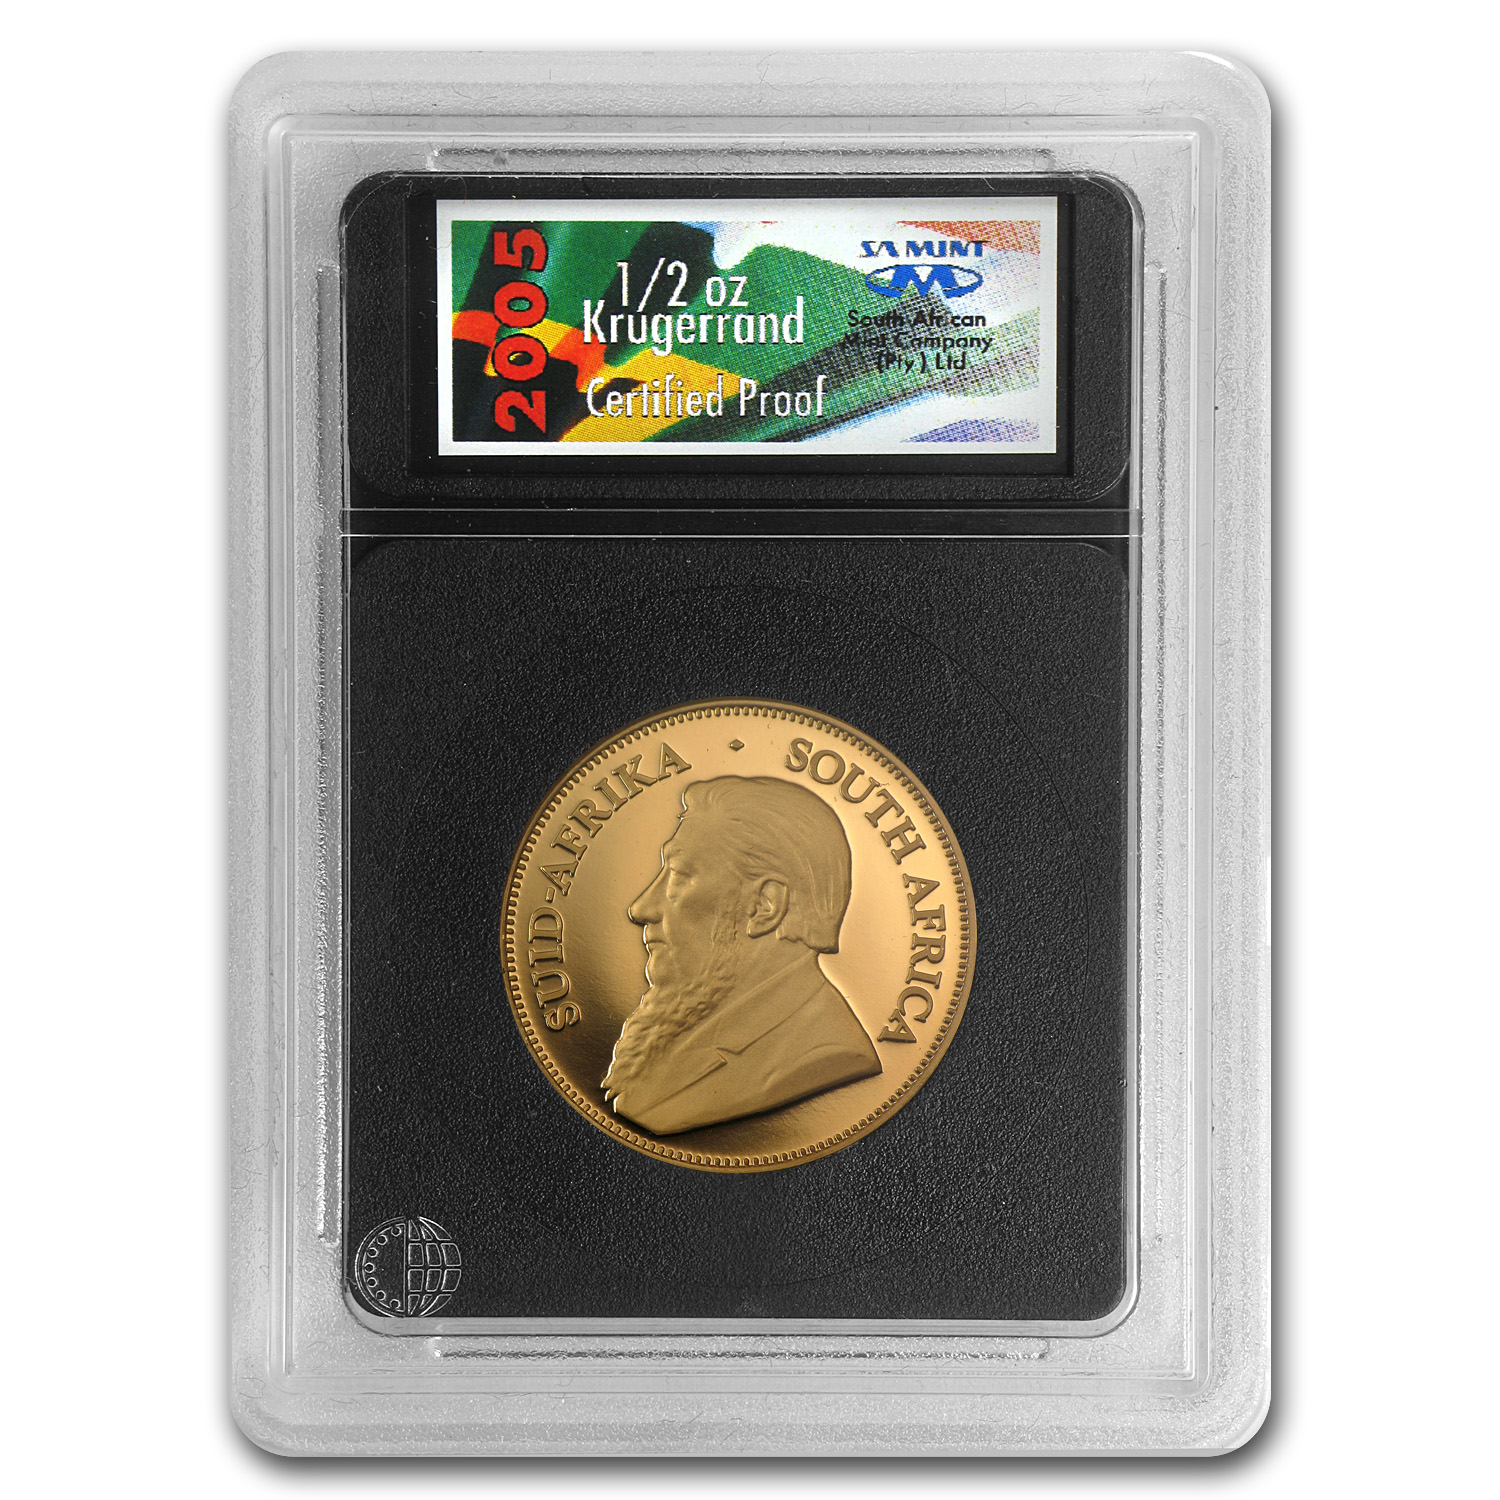 2005 South Africa 1/2 oz Proof Gold Krugerrand (with Box & COA)